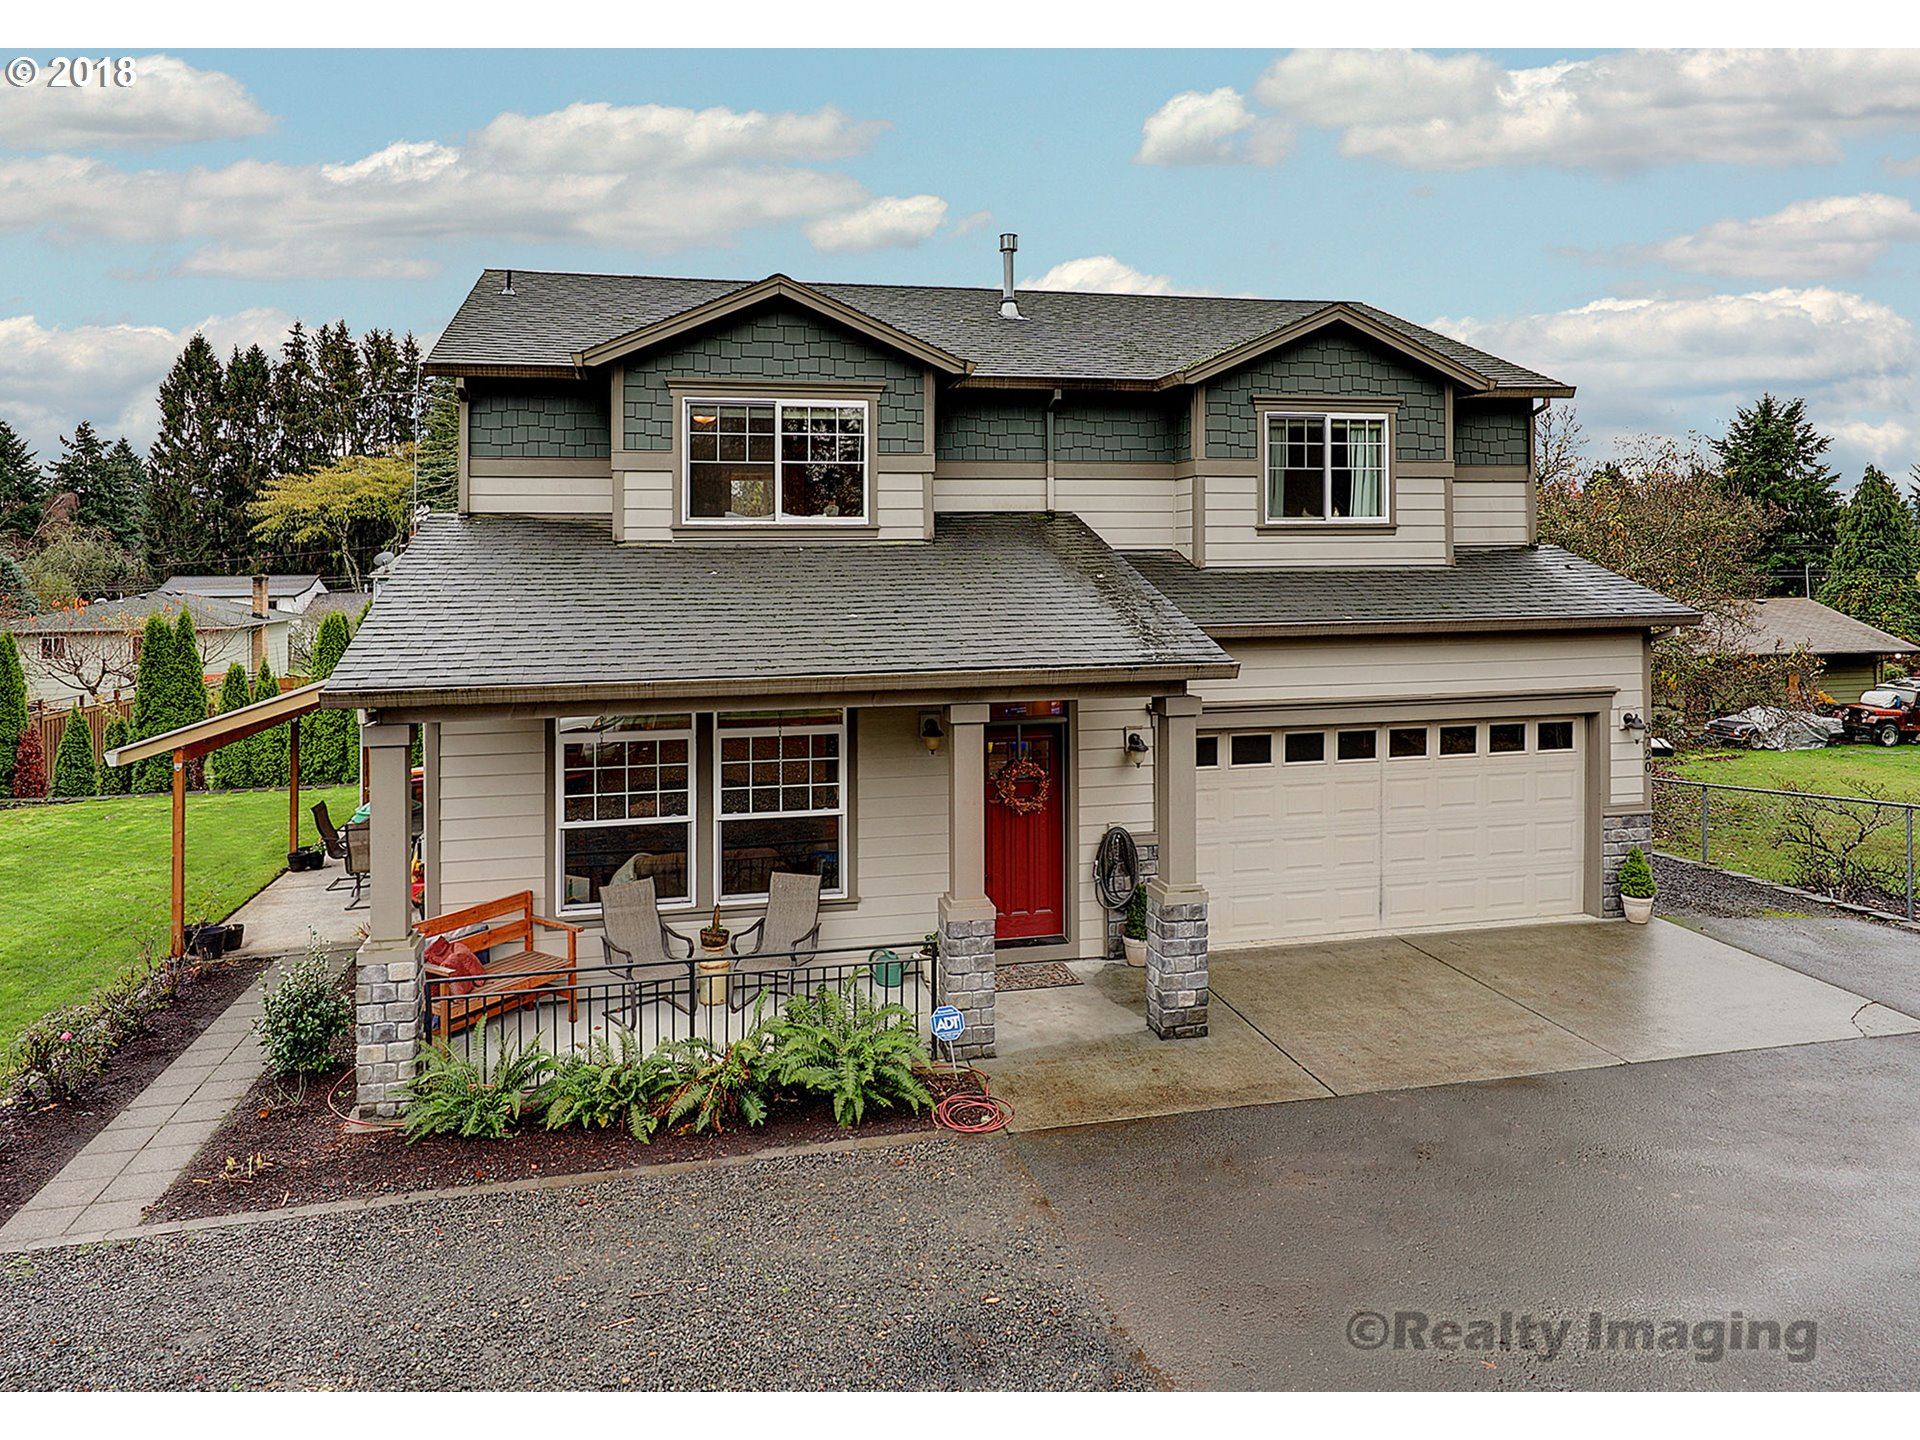 2218 sq. ft 4 bedrooms 3 bathrooms  House For Sale, Portland, OR